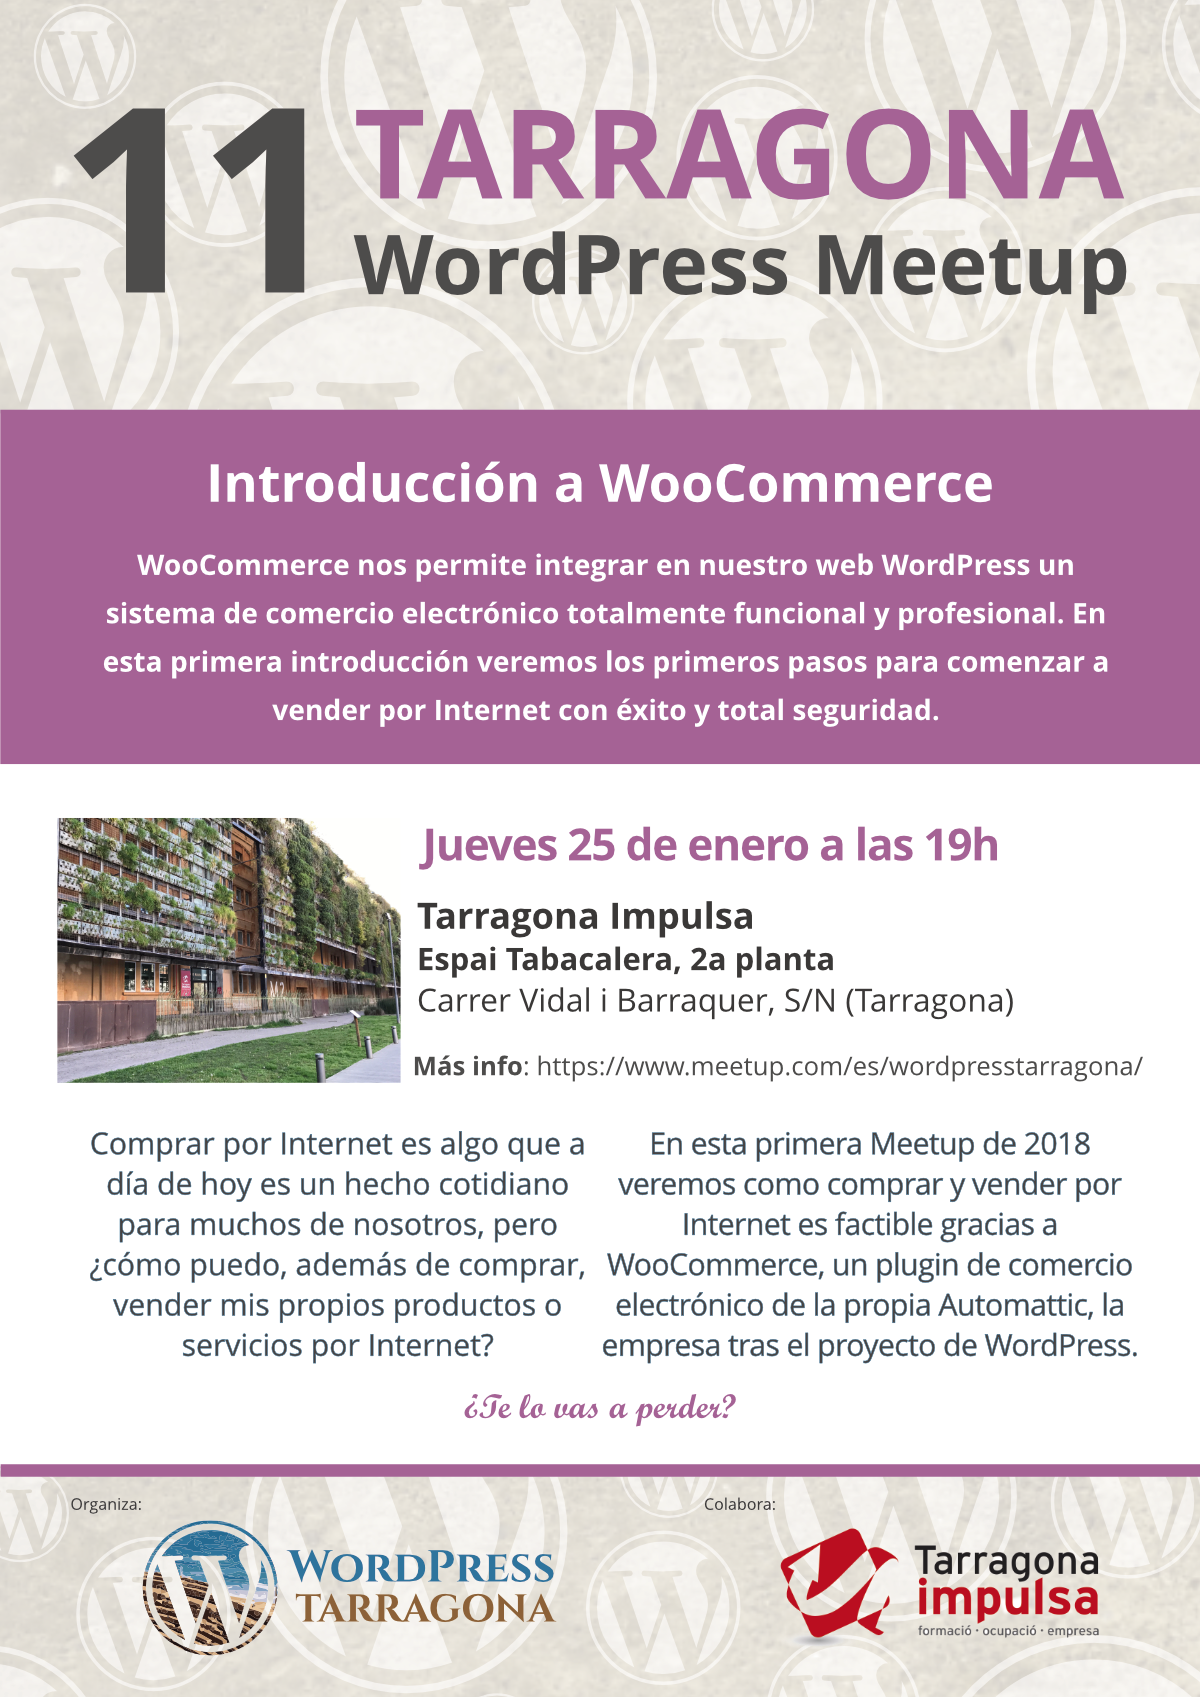 11ava Meetup de WordPress Tarragona, Introducción a WooCommerce